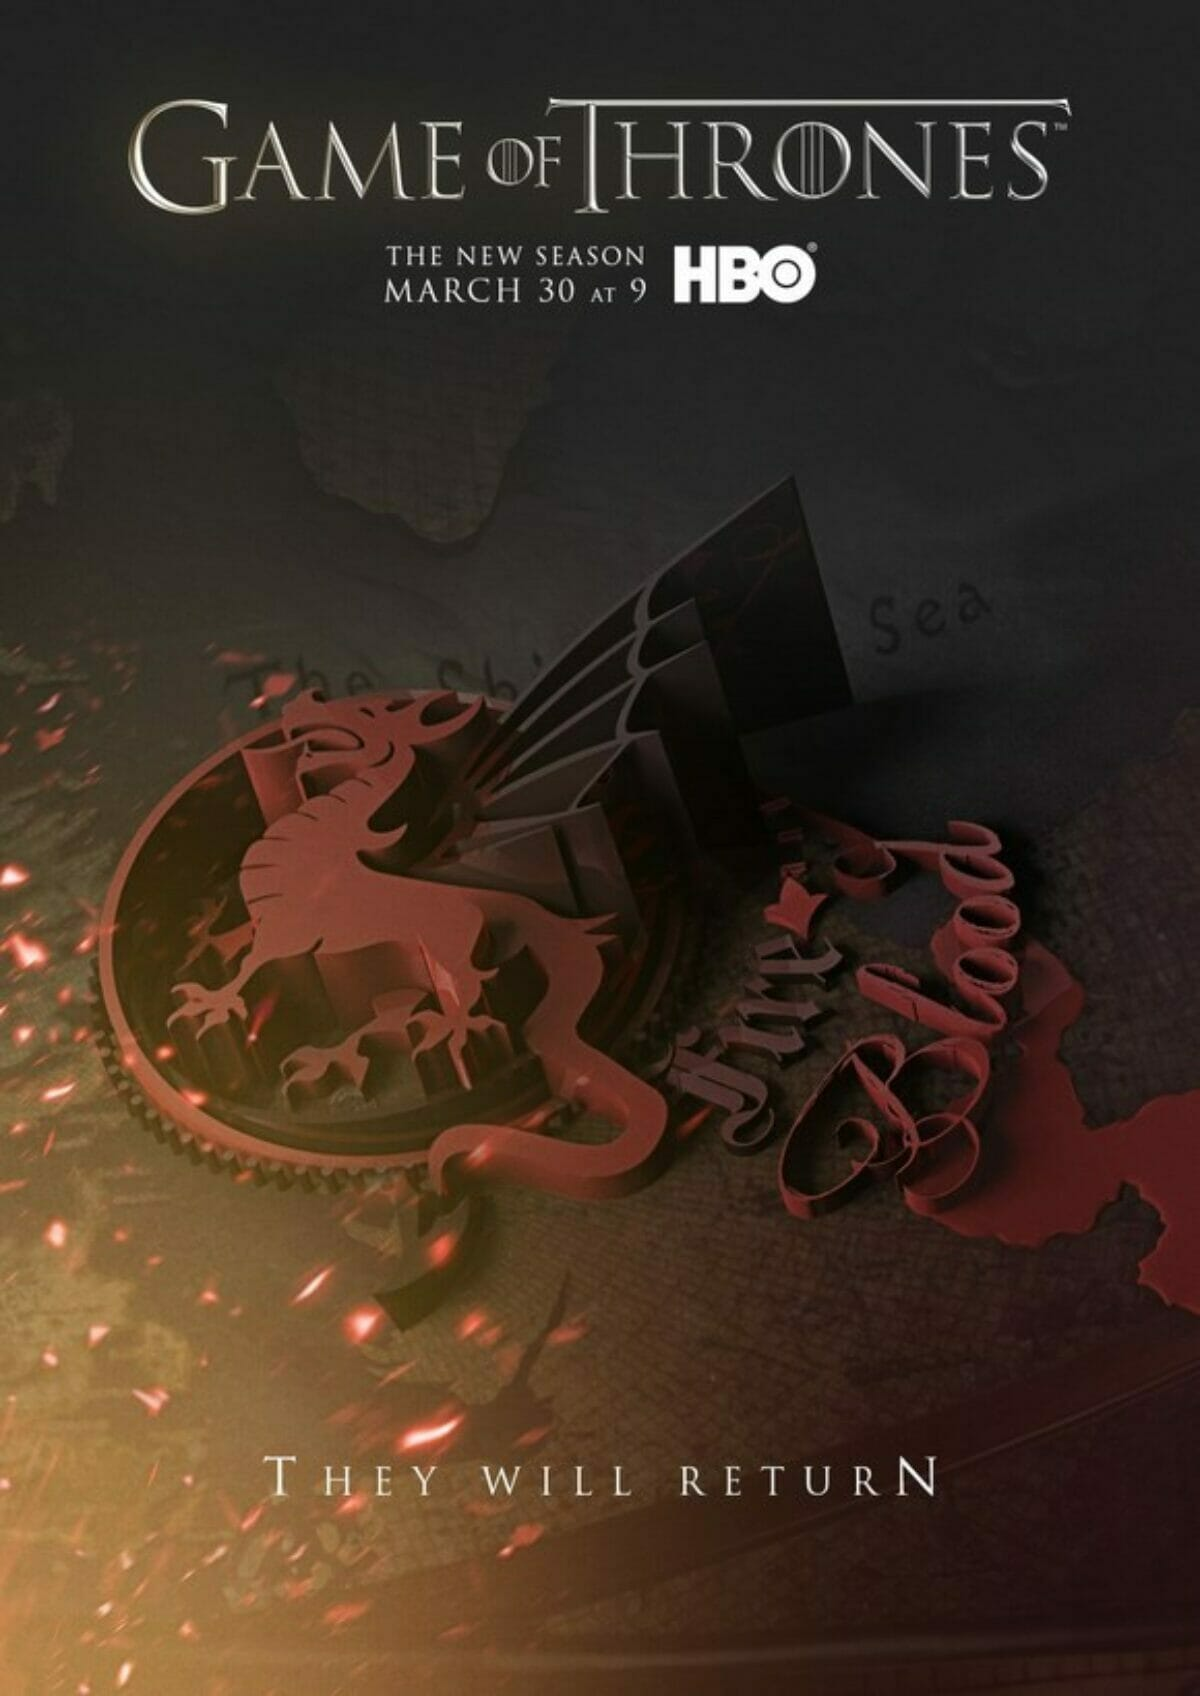 Game-Of-Thrones-Season-4-Poster-game-of-thrones